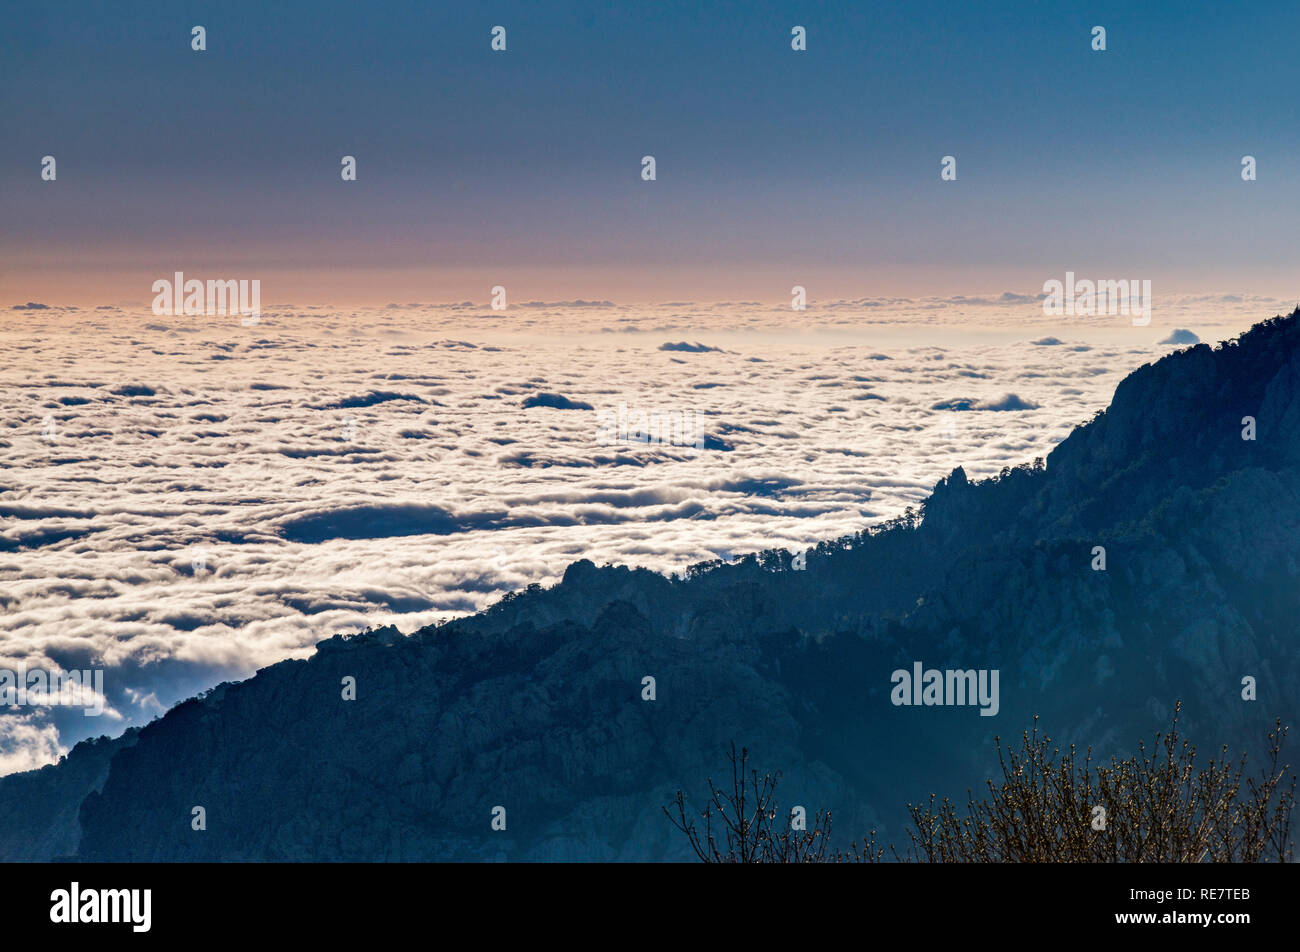 Low clouds over Fium Orbo valley, early morning, view from Gite d'etape U Fugone, mountain hut at Monte Renoso trailhead, Haute-Corse, Corsica, France Stock Photo